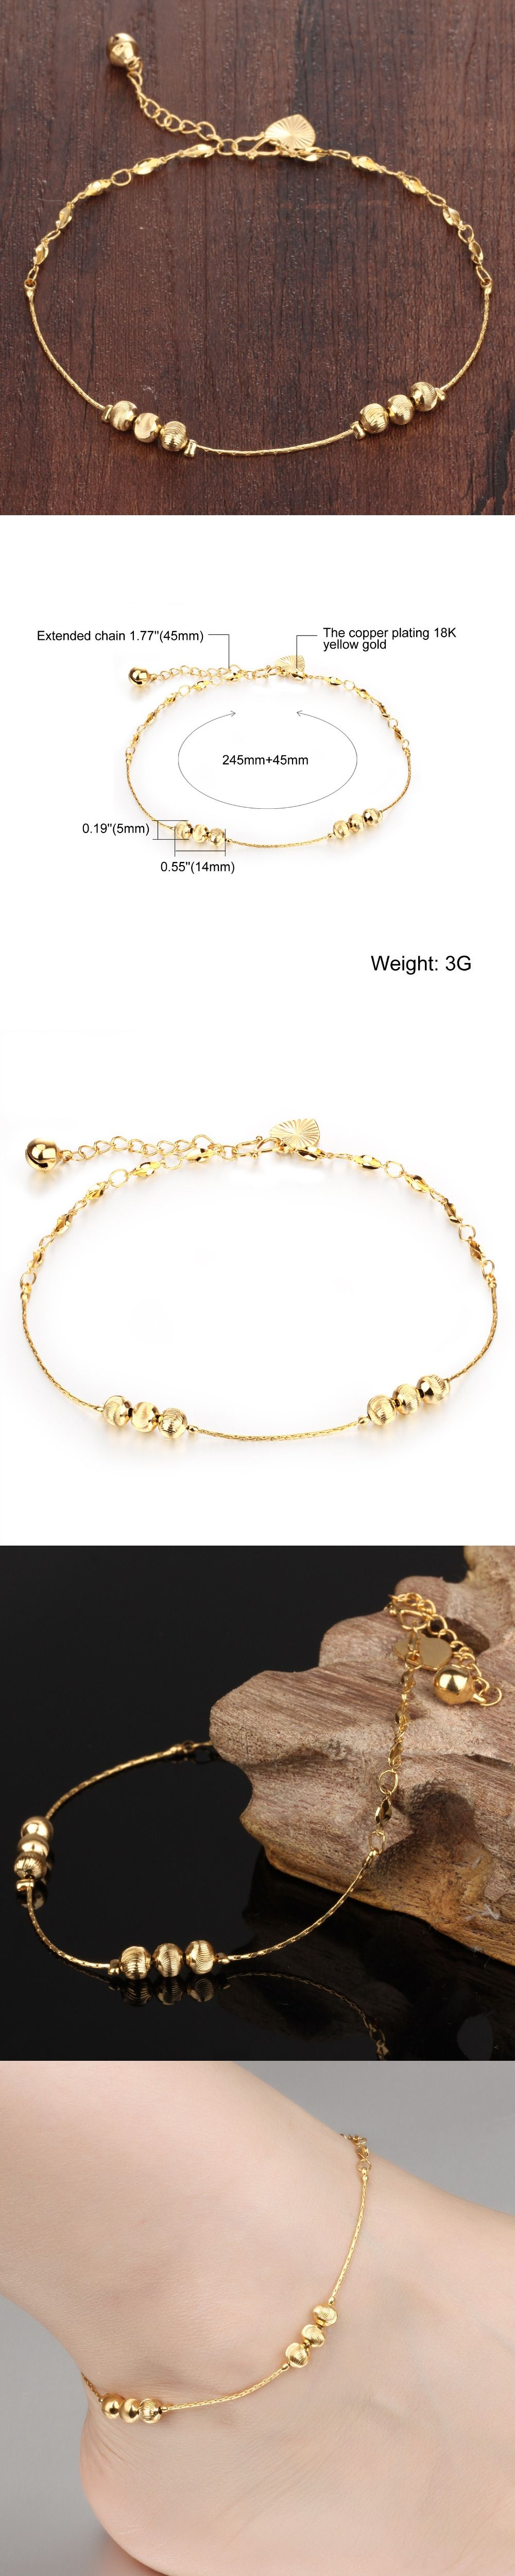 of women a to daily market available are gold fact the fond order embellishment satisfy gossip as not baby bracelet it life matter enjoy young anklets anklet womens jewelry in wearing girls even just